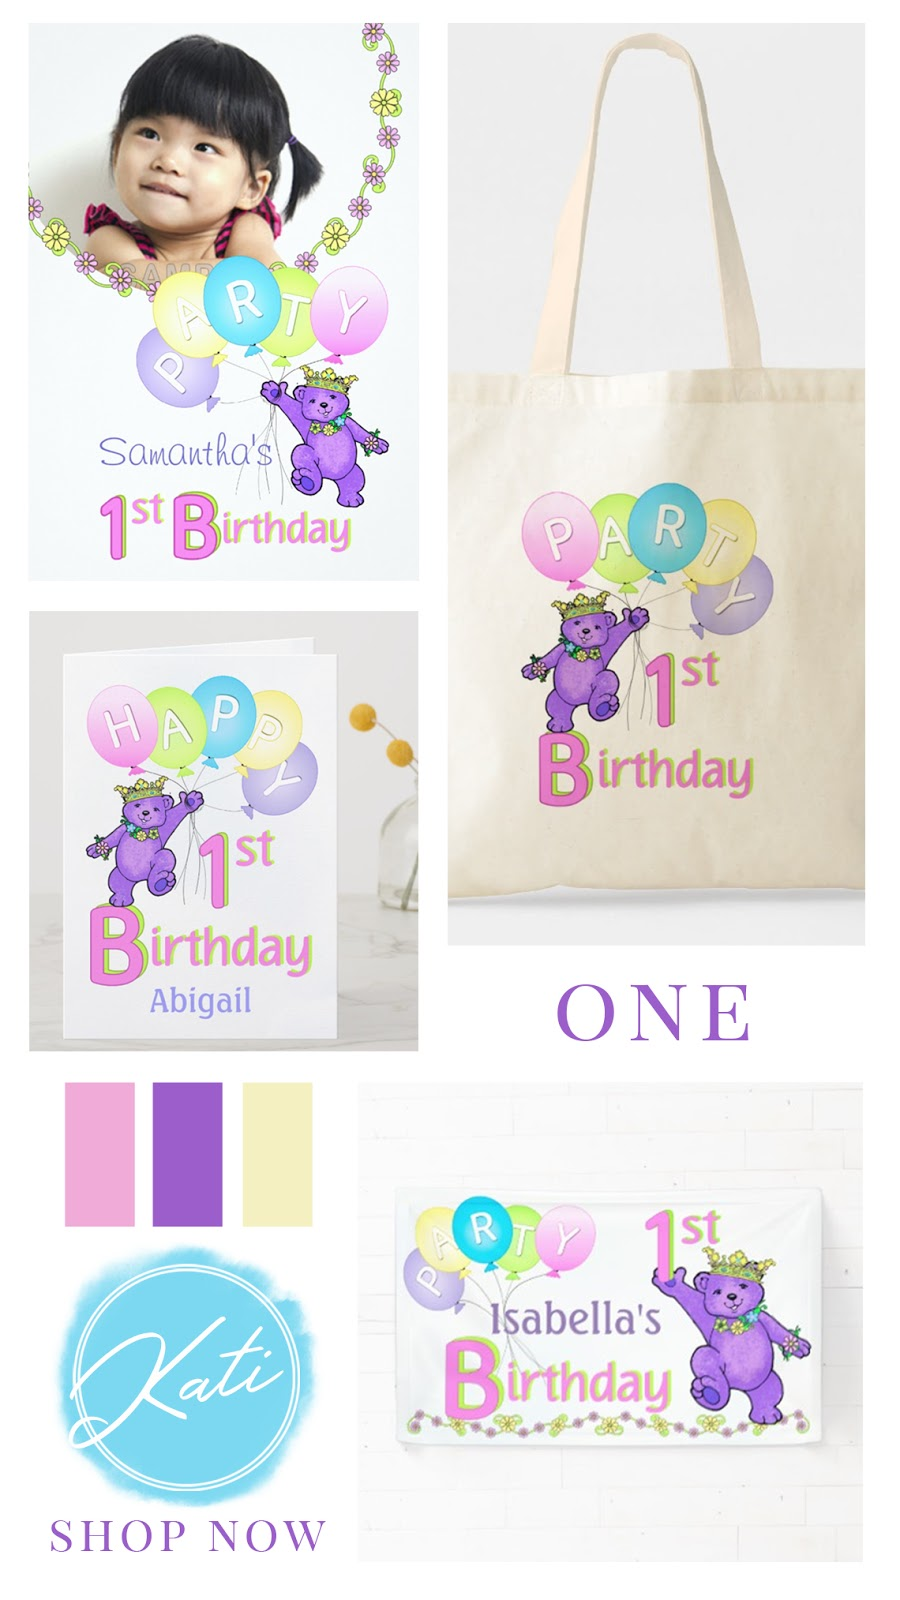 Purple bear and balloons first birthday party collection. Featuring personalized invitations, cards, bags, gifts, and party decor. In a confetti pink, sweetness yellow, cotton candy blue, and playful purple color palette.